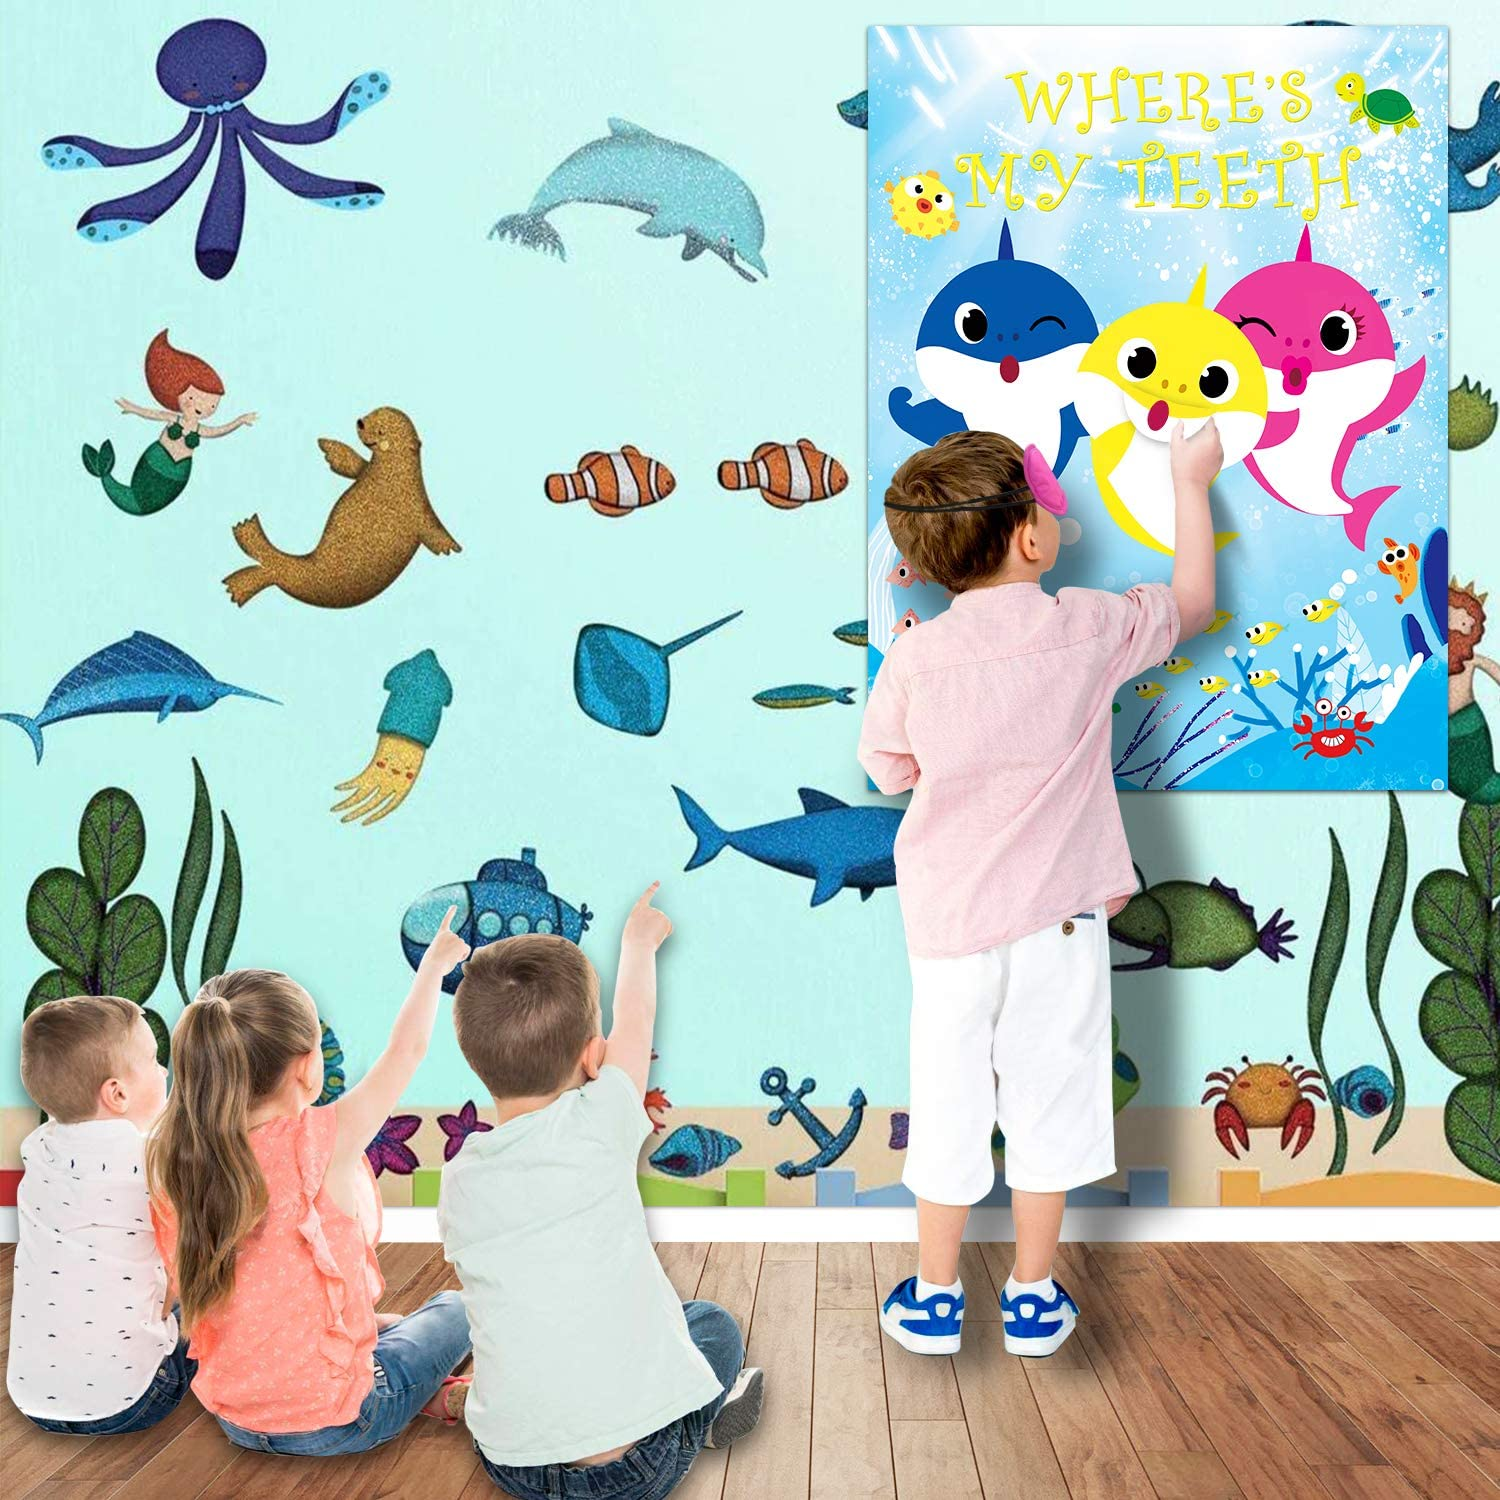 Shark Party Game Pin The Teeth On Shark Party Favors Games For Kids Shark Theme Birthday Baby Shower Party Supplies 24 Teeth